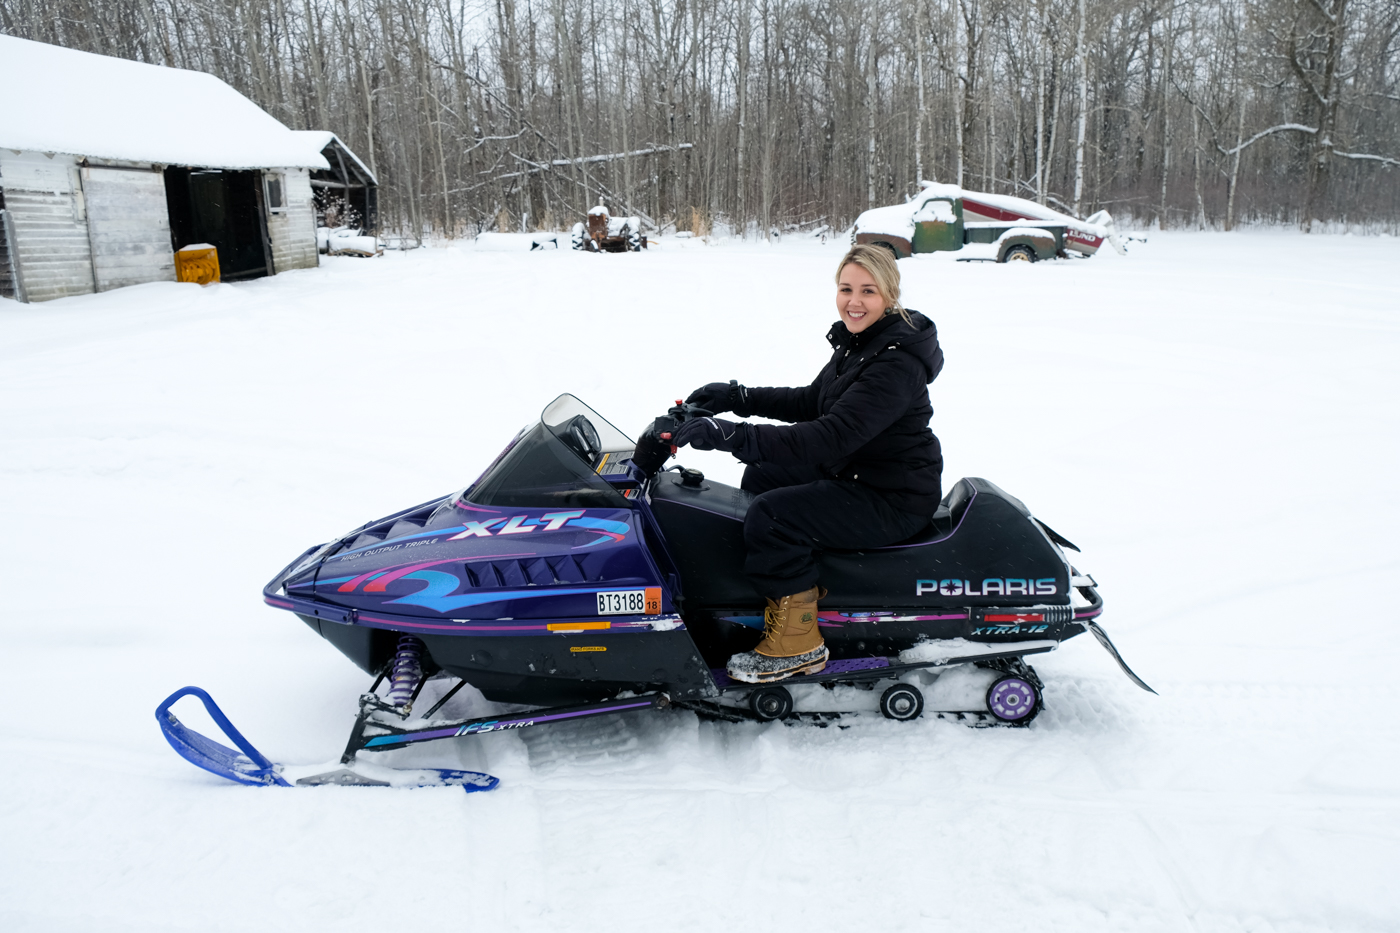 Debora Dahl playing in the snow in the snowmobile